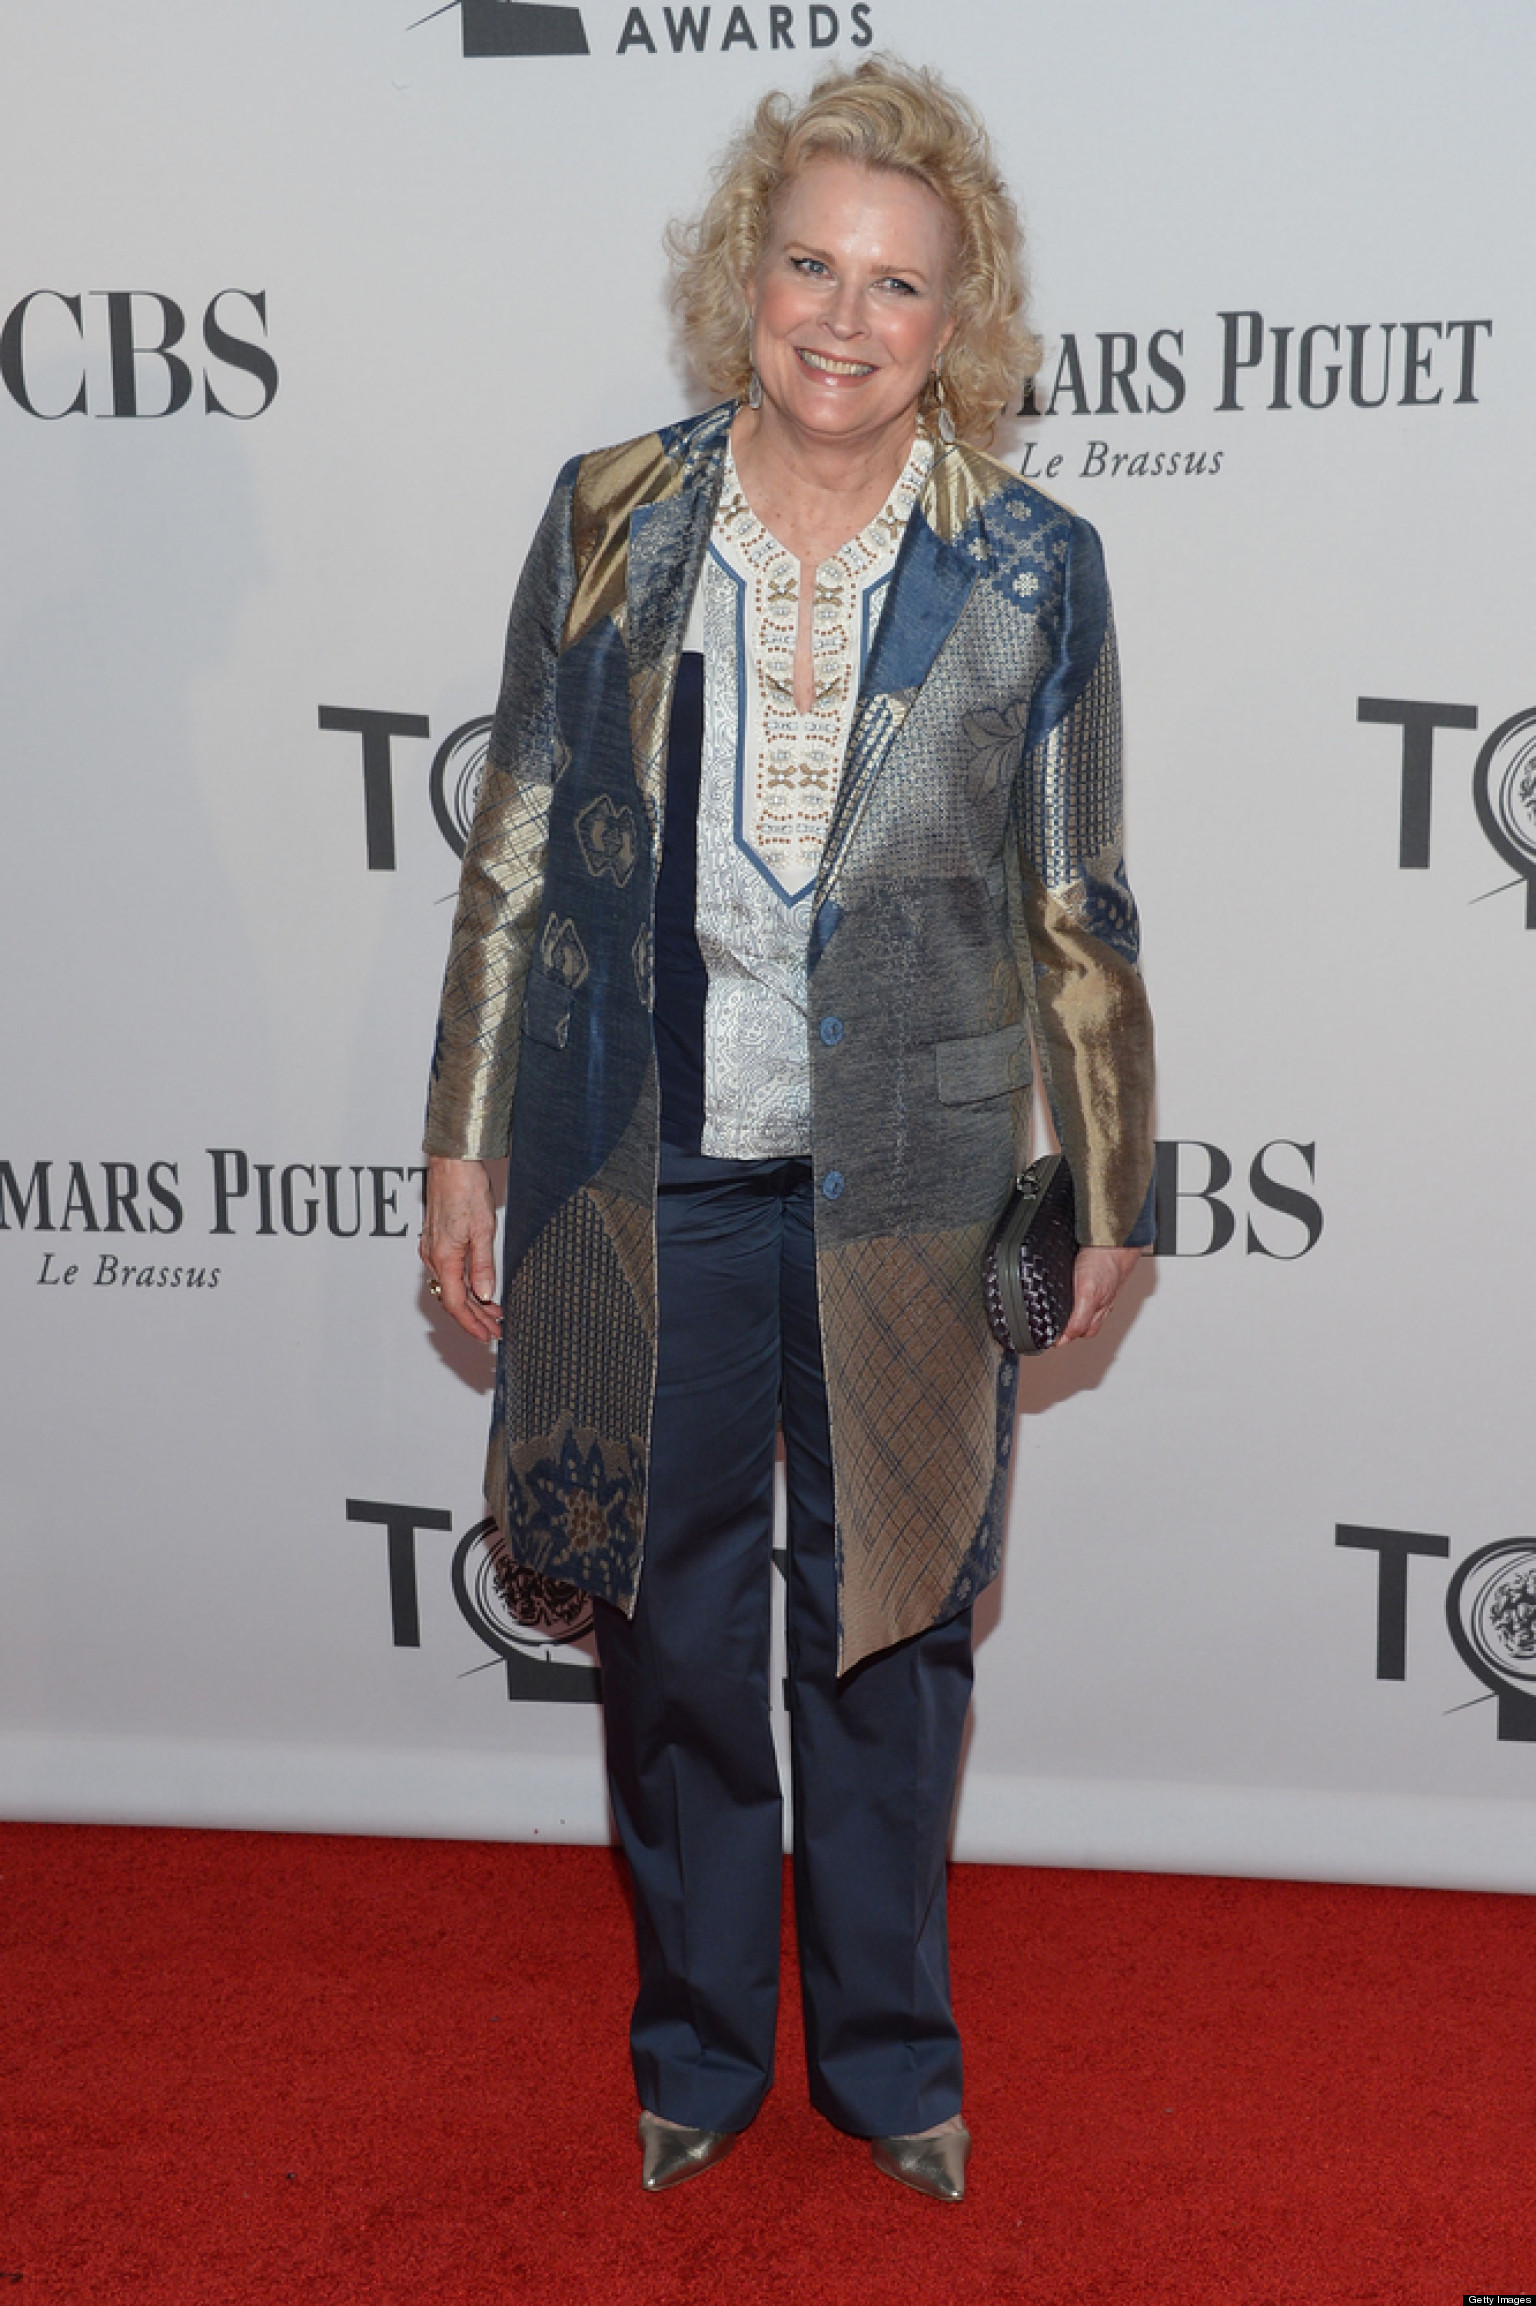 Candice Bergen Candice Bergen Producing Film